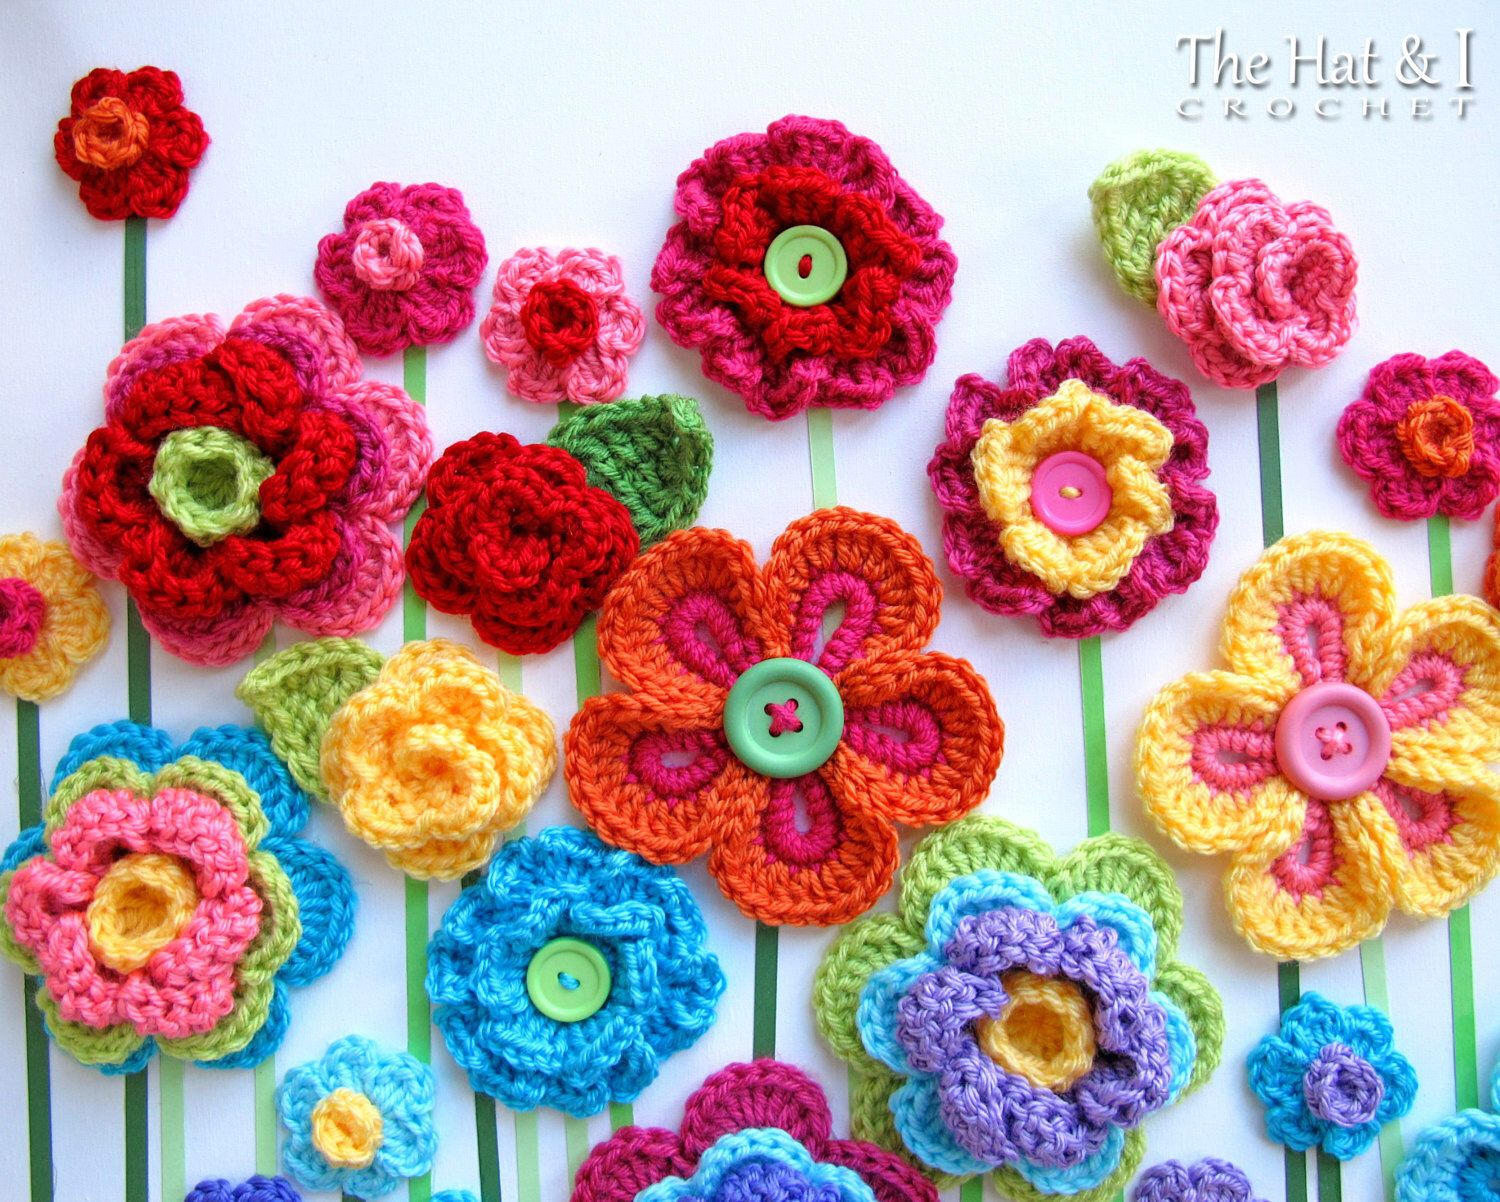 Crochet pattern floral fantasy 5 colorful crochet flower crochet pattern floral fantasy 5 colorful crochet flower patterns 2 crochet leaf patterns bankloansurffo Images